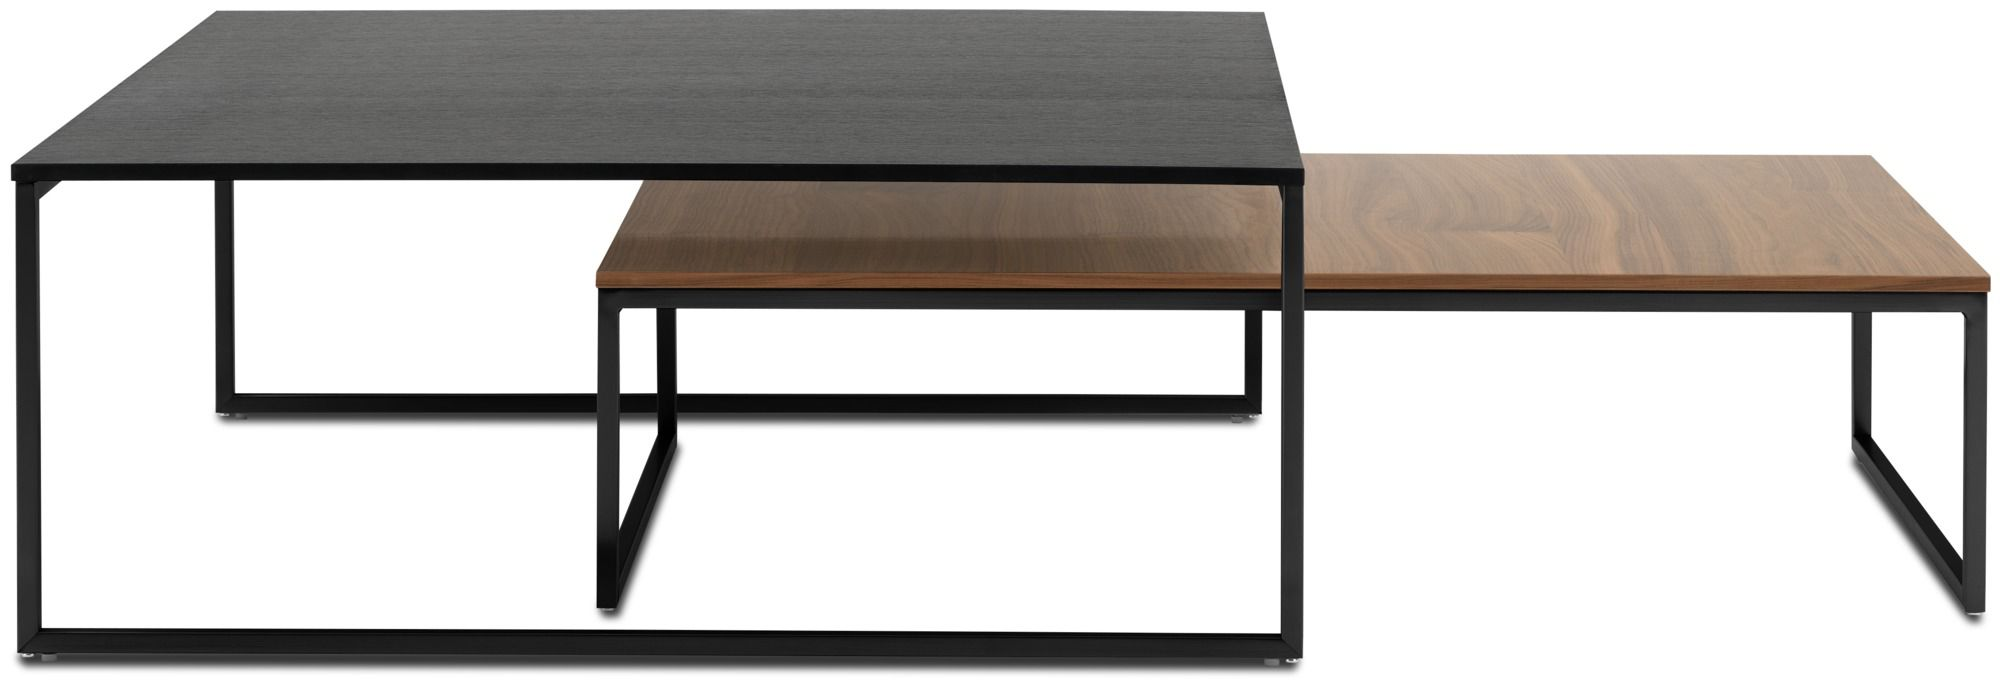 Modern Coffee Tables Contemporary Coffee Tables Boconcept 130 Barrow Pinterest Mesas